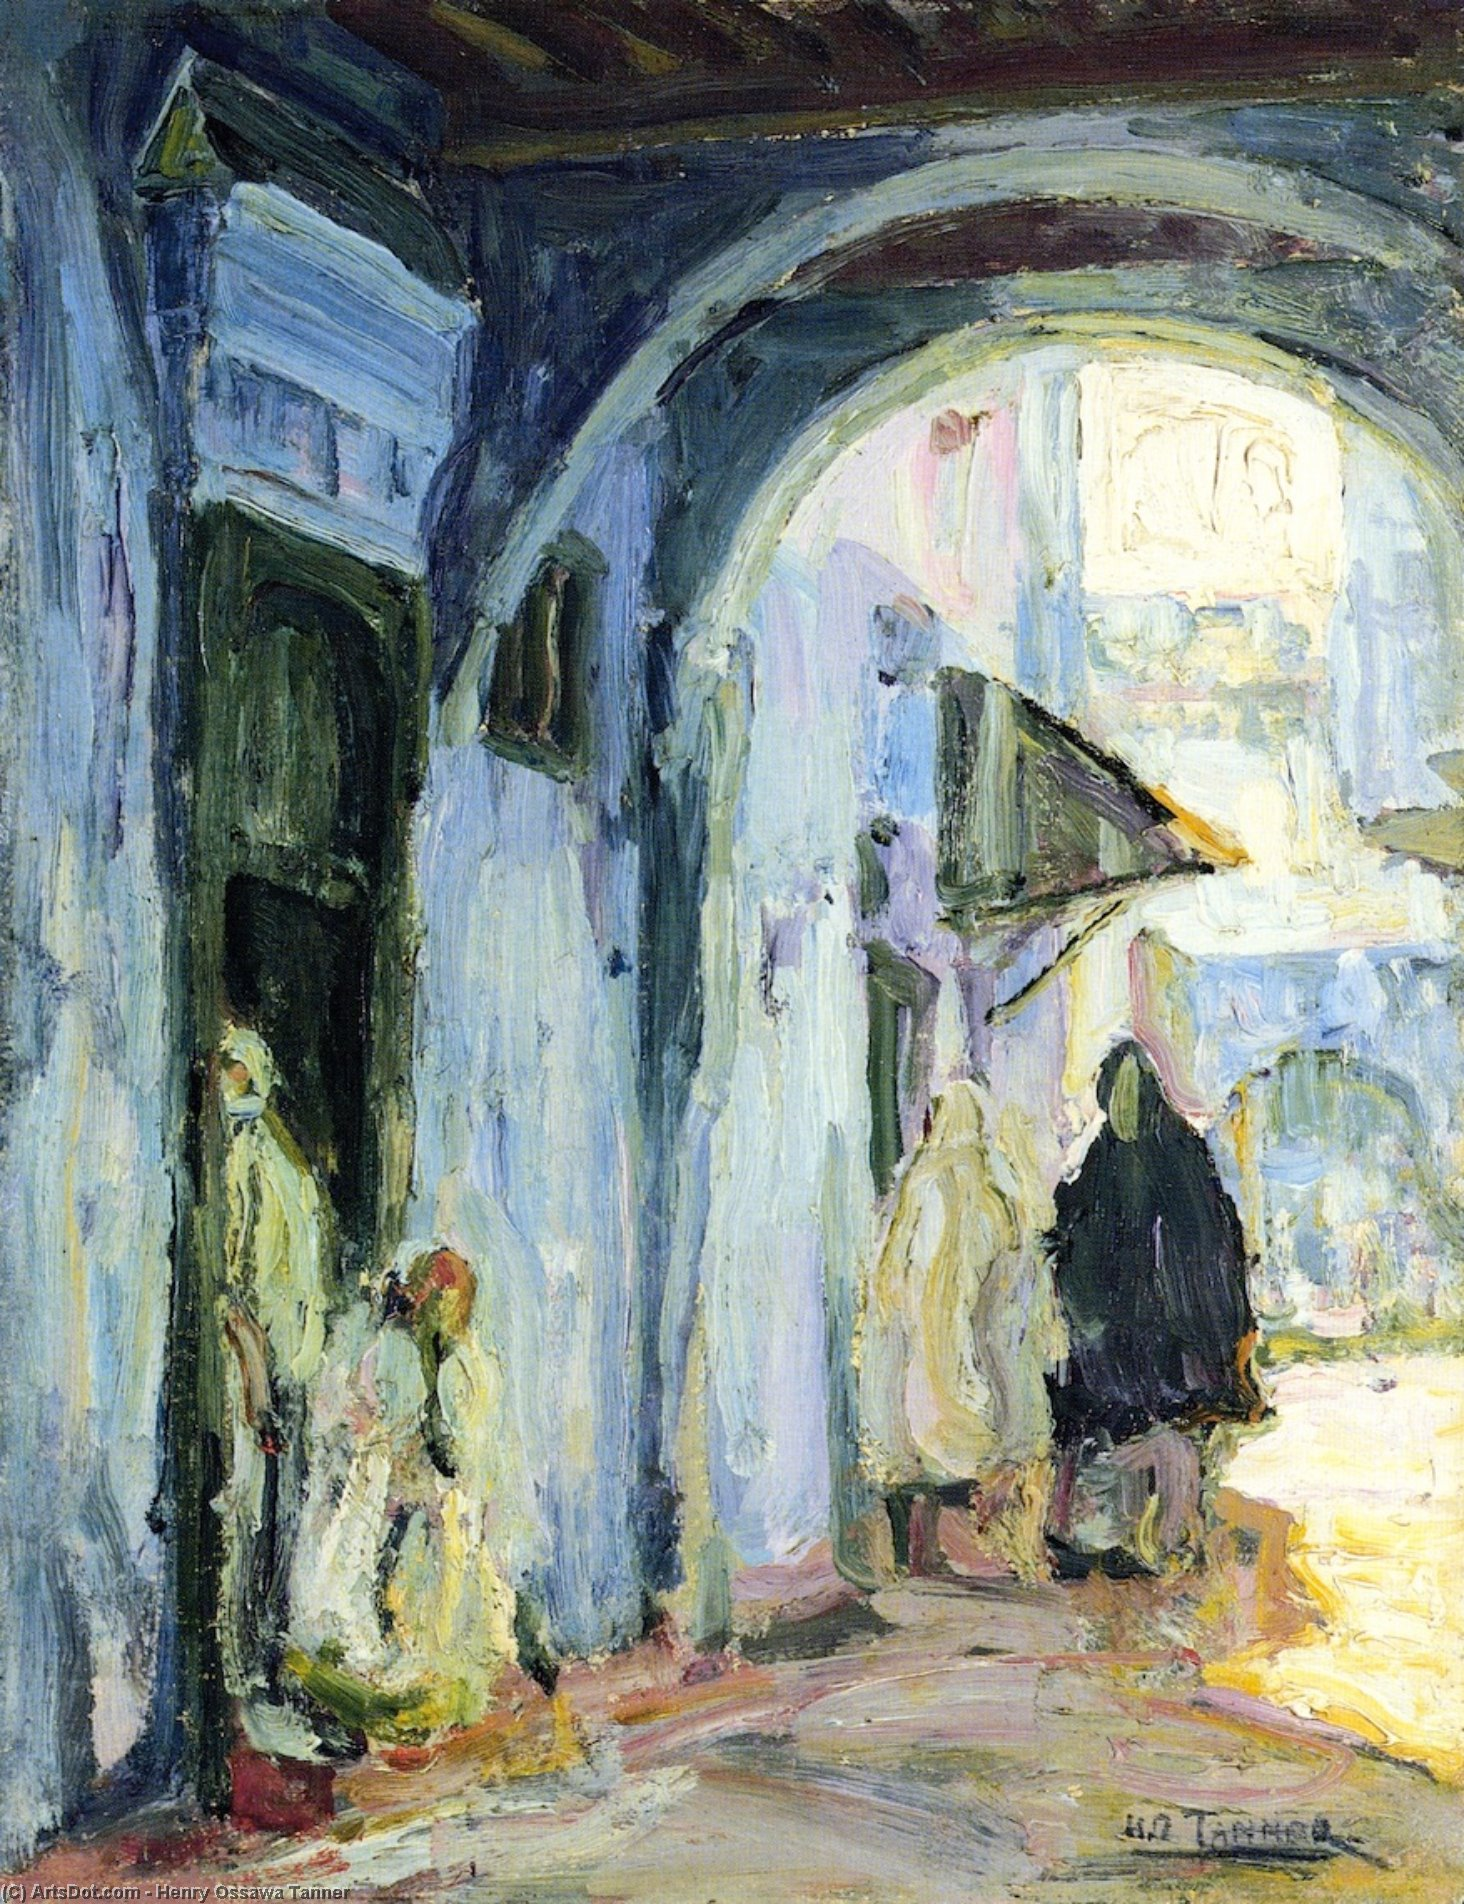 Street in Tangier, Painting by Henry Ossawa Tanner (1859-1937, United States)